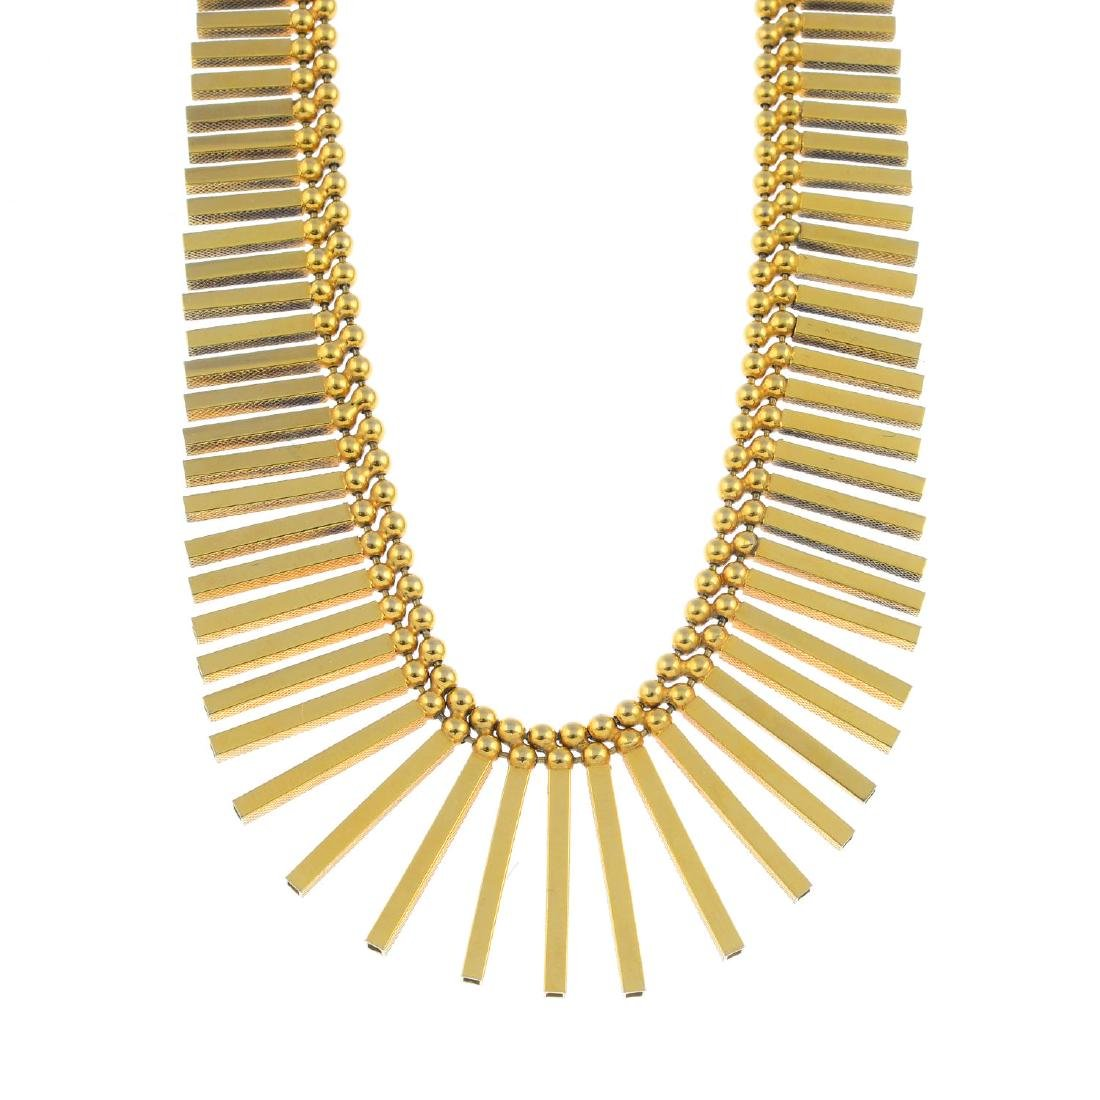 A 1970s 9ct gold necklace. Designed as a graduated